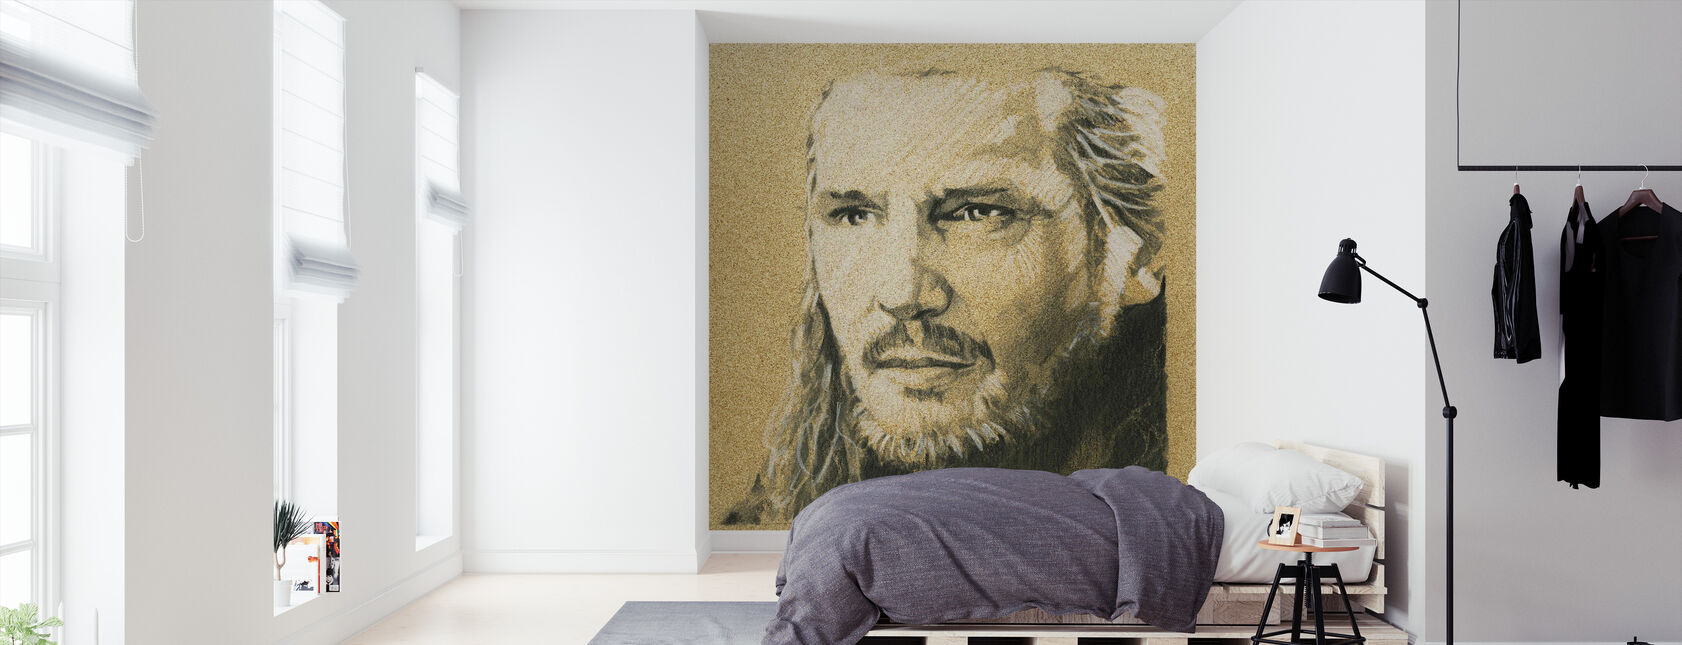 Star Wars - Qui-Gon Jinn grafitt - Tapet - Soverom